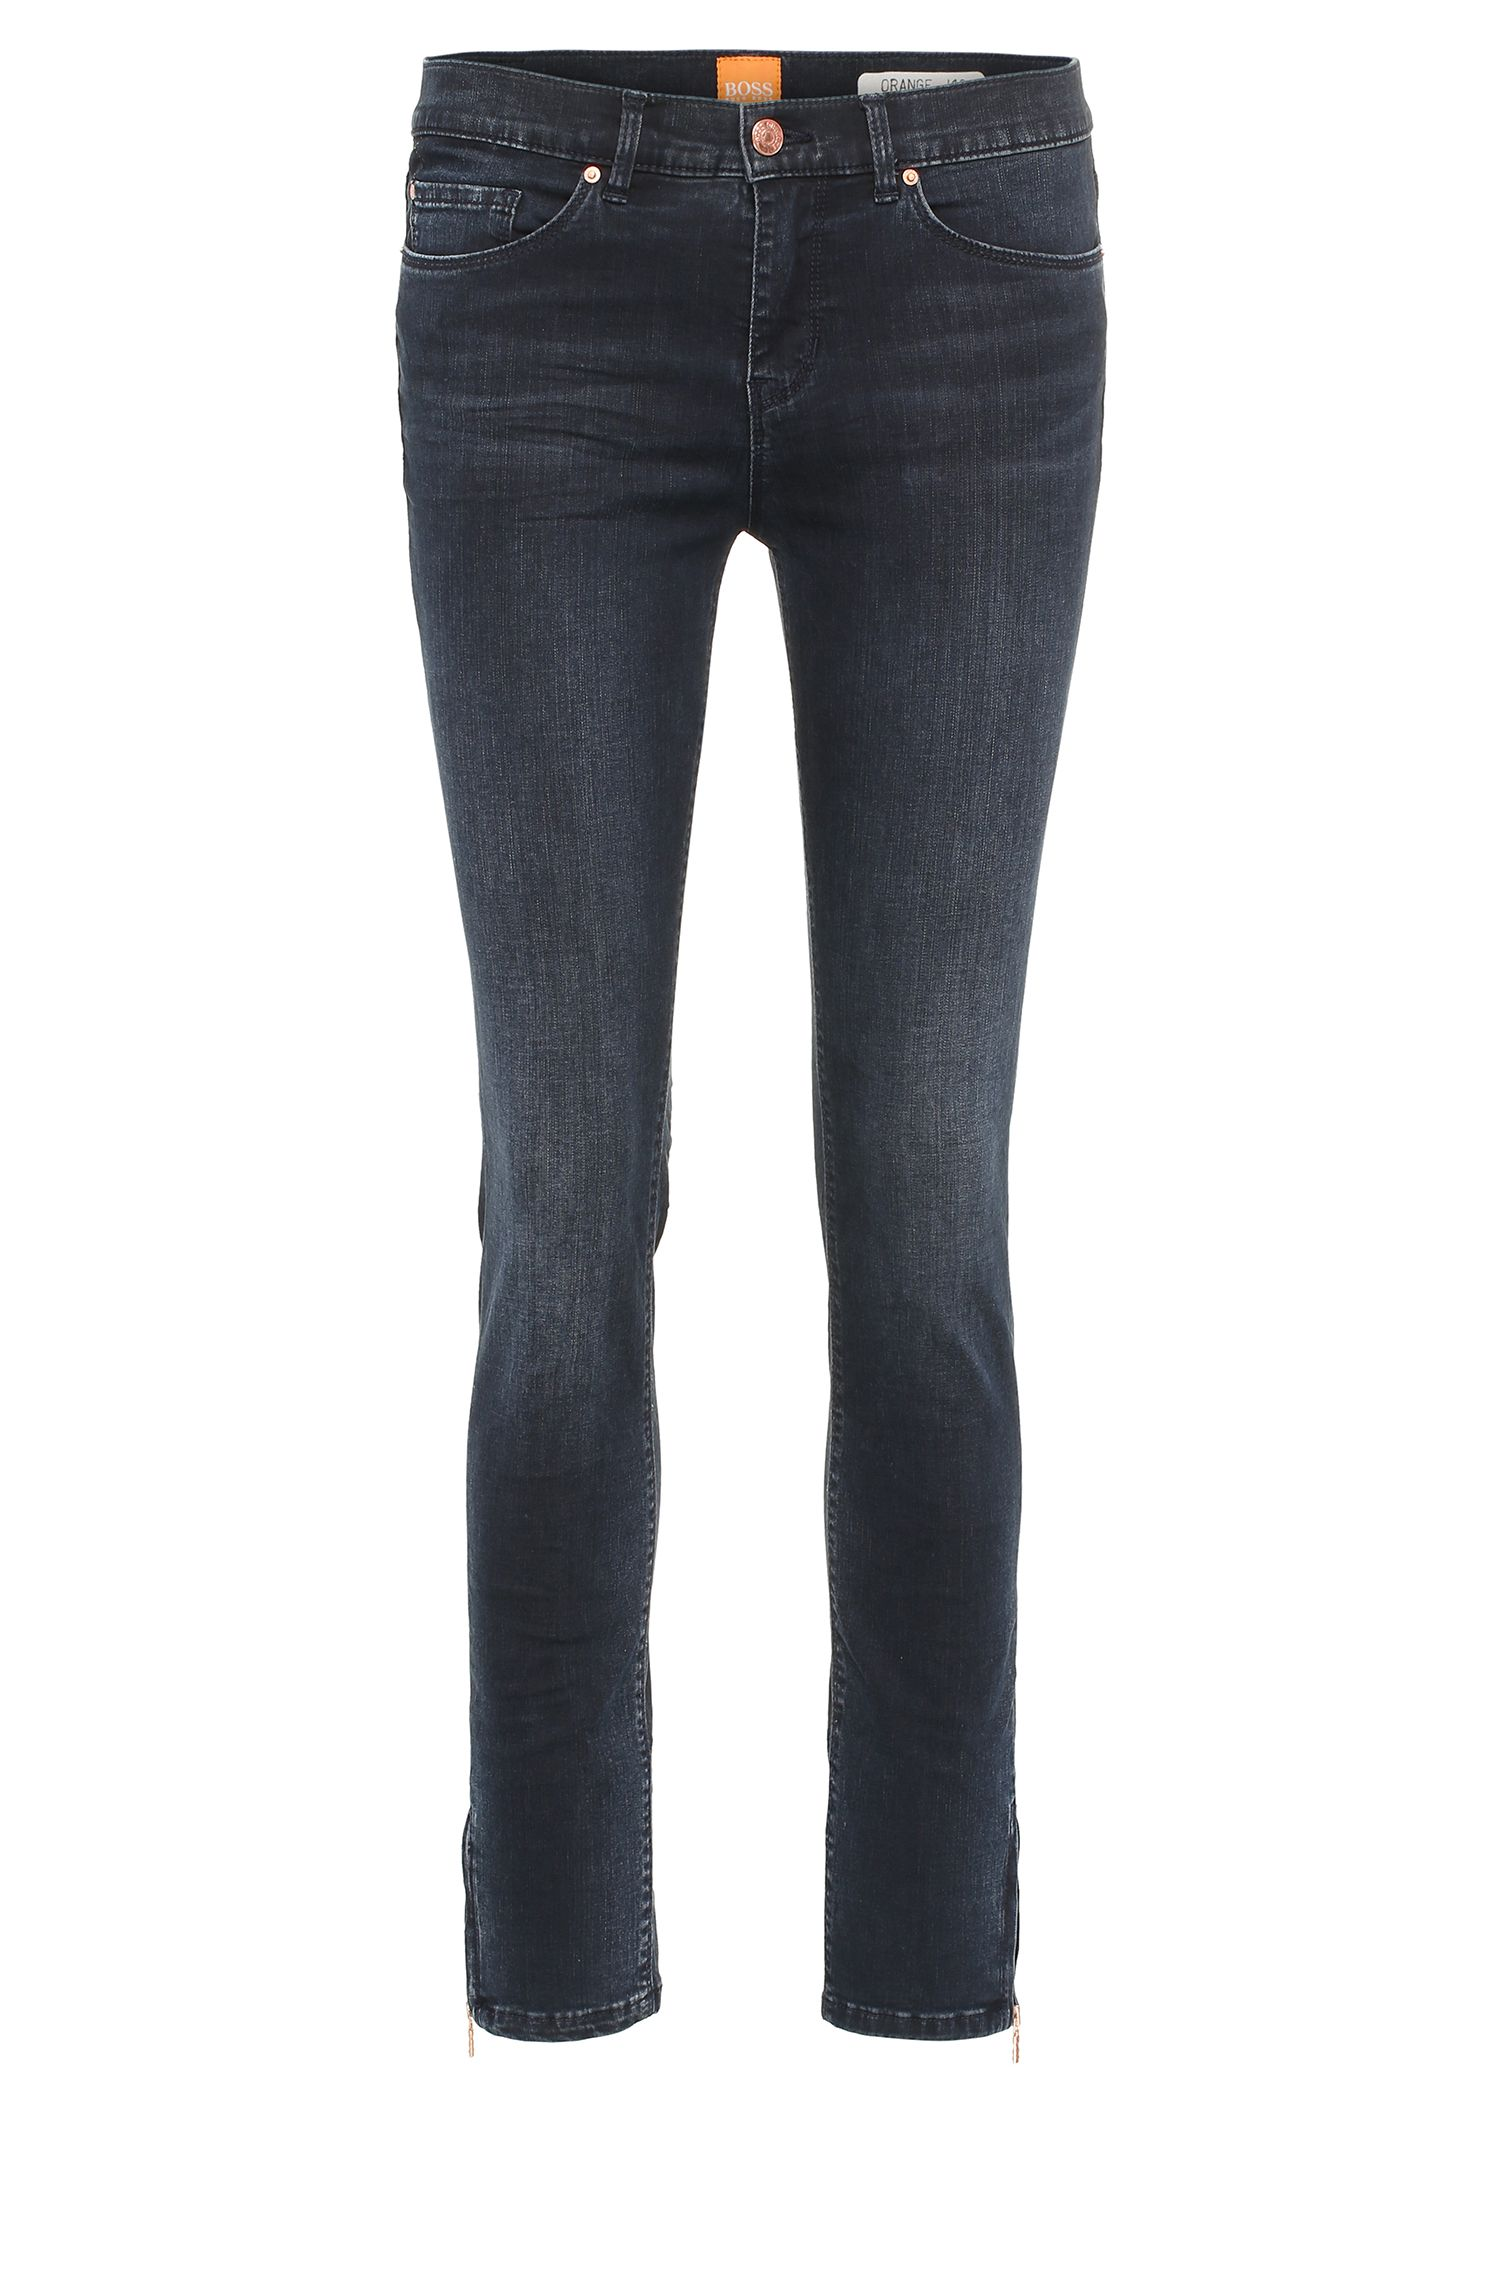 Skinny-Fit Jeans aus elastischem Baumwoll-Mix: ´Orange J10 Irvine`